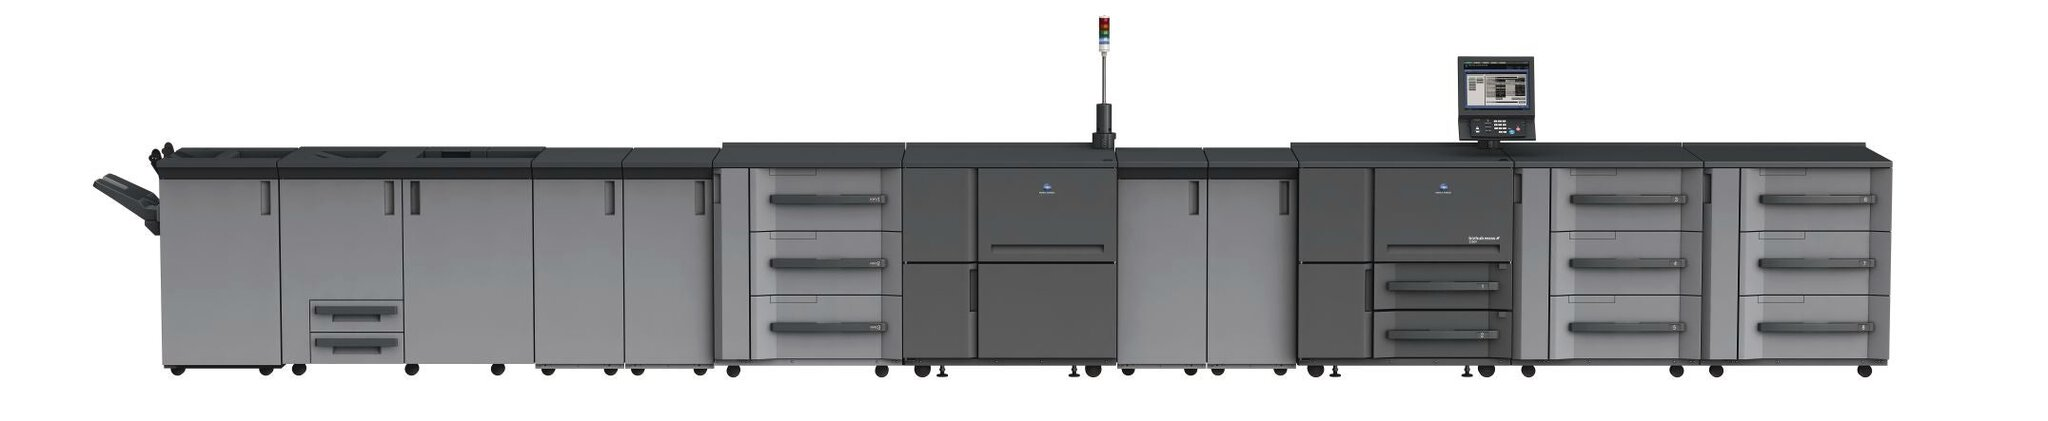 Konica Minolta Bizhub Press 2250p